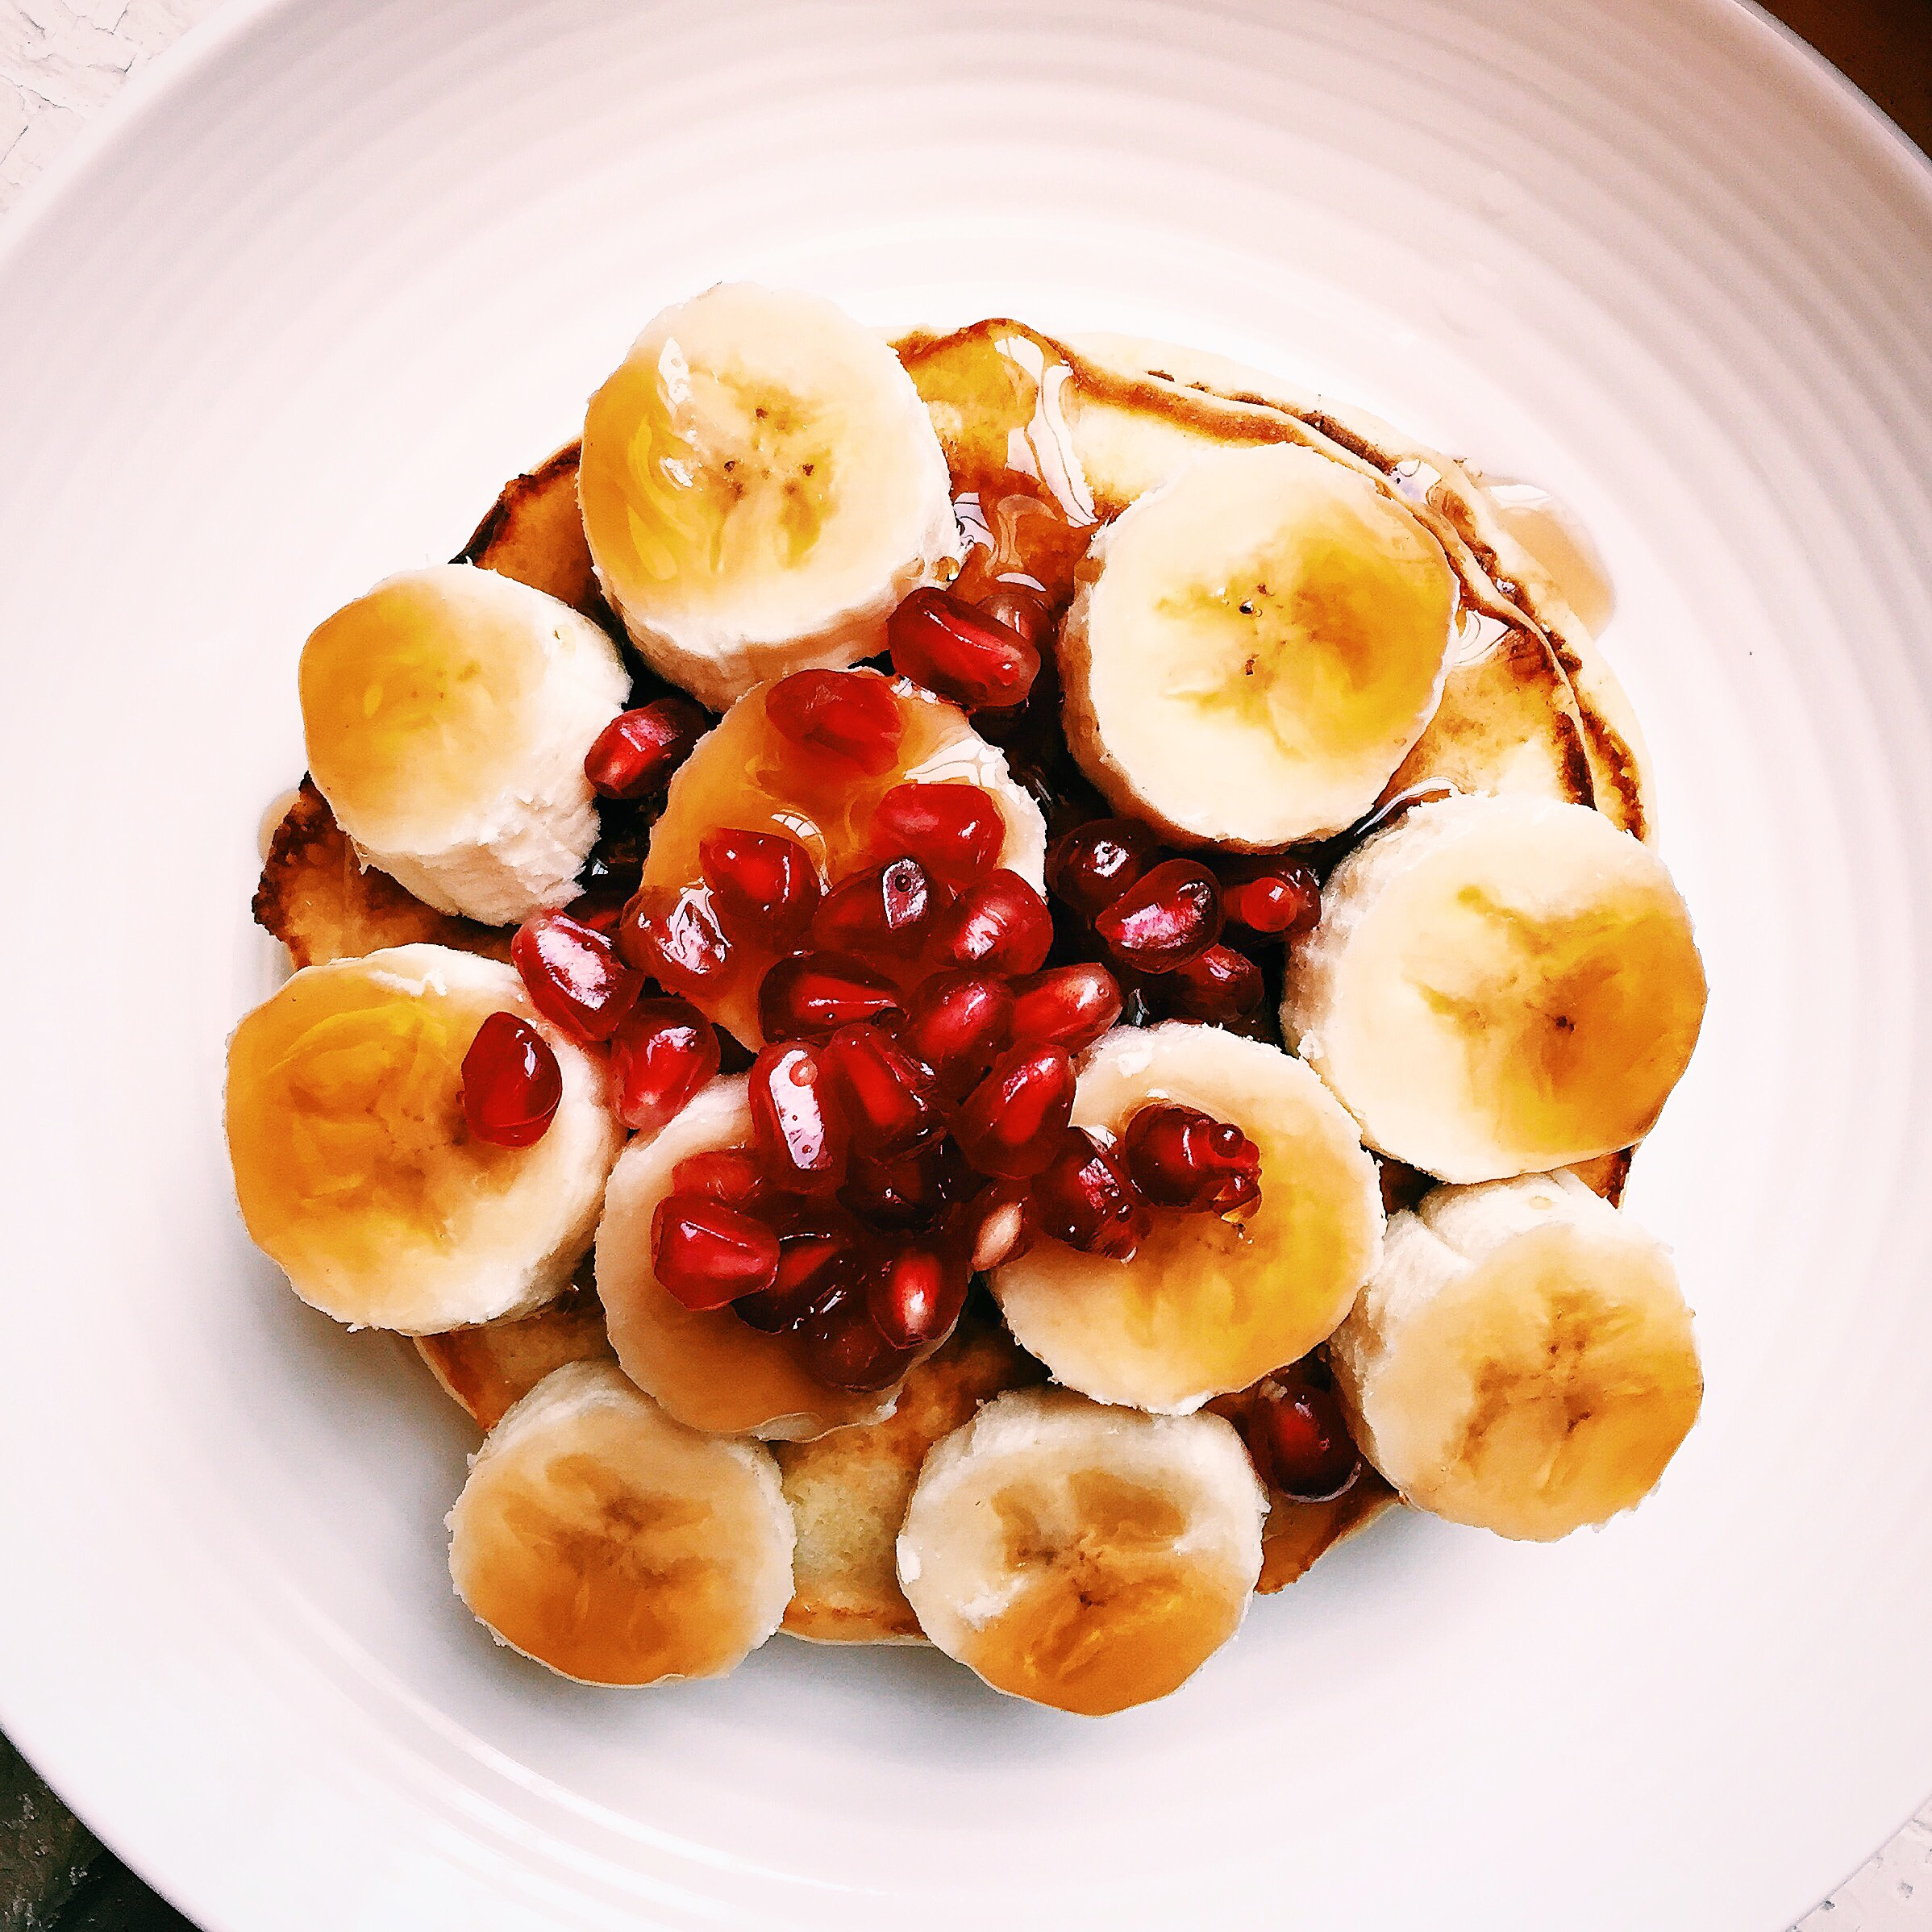 First Breakfast of the New Year: pancakes with bananas andpomegranate seeds